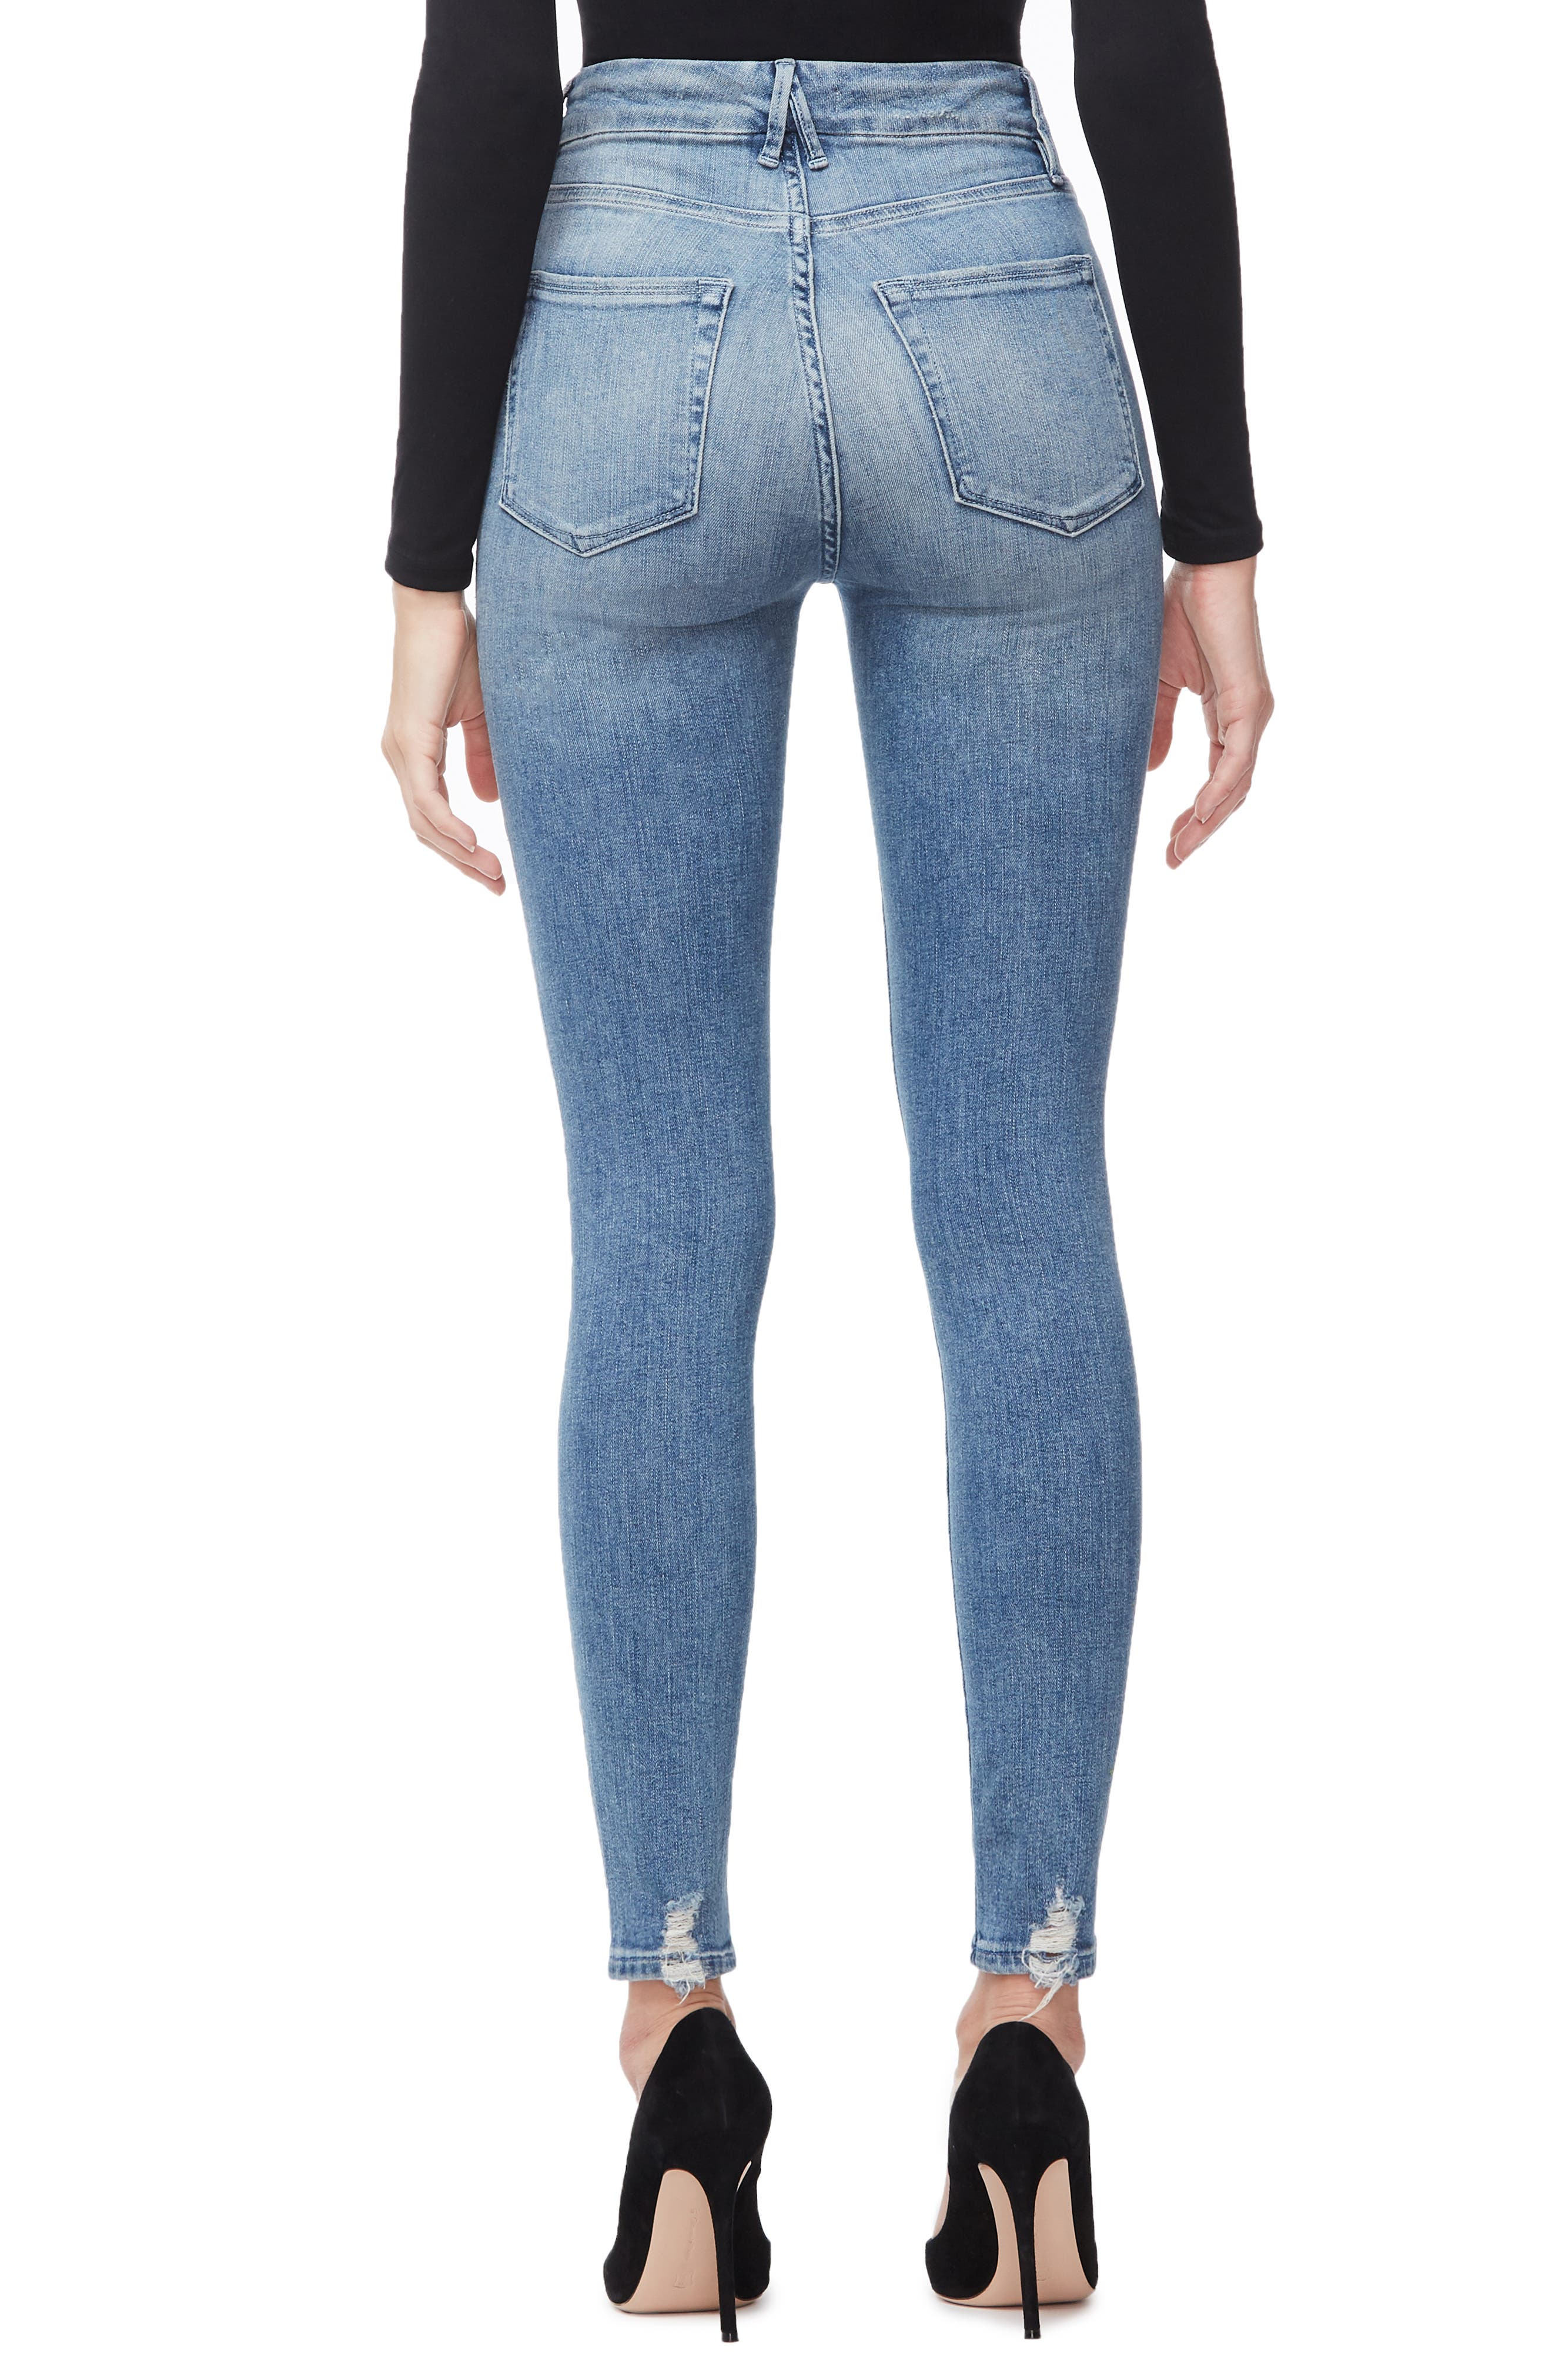 GOOD AMERICAN, Good Waist Ripped High Waist Skinny Jeans, Alternate thumbnail 4, color, BLUE262